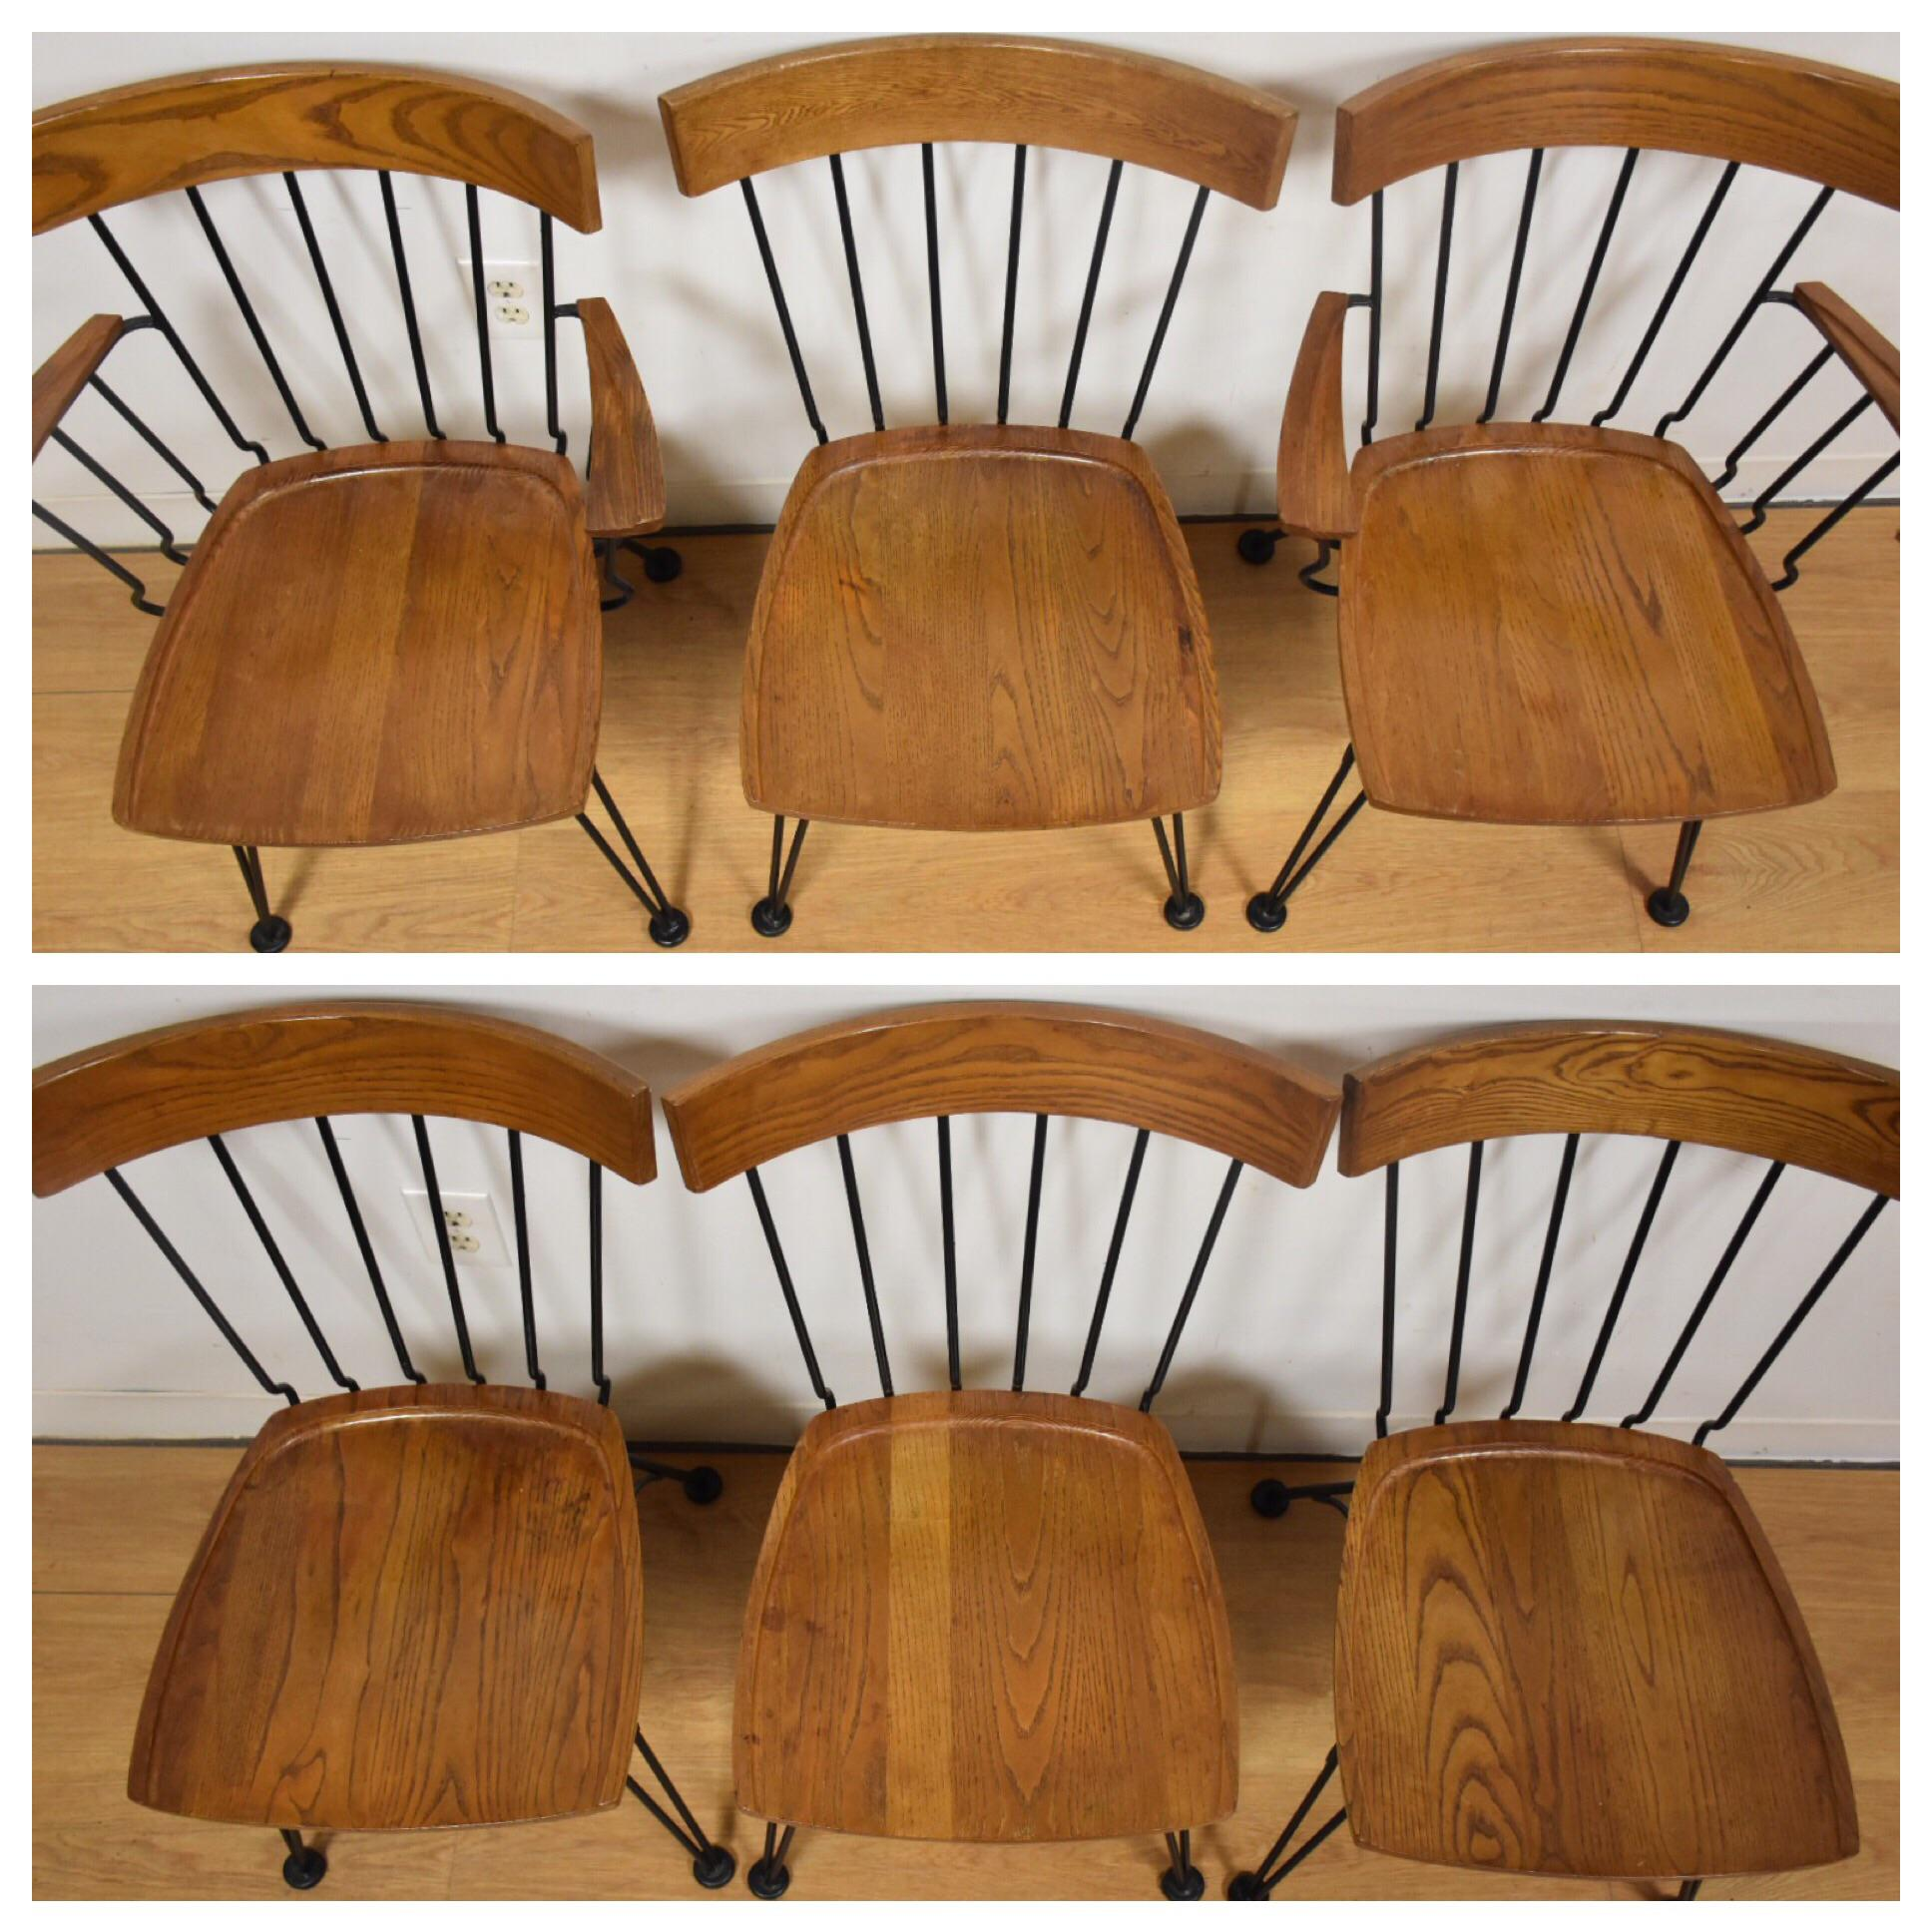 Lyman Woodard Dining Table And Chairs   Set Of 7   Image 4 Of 11